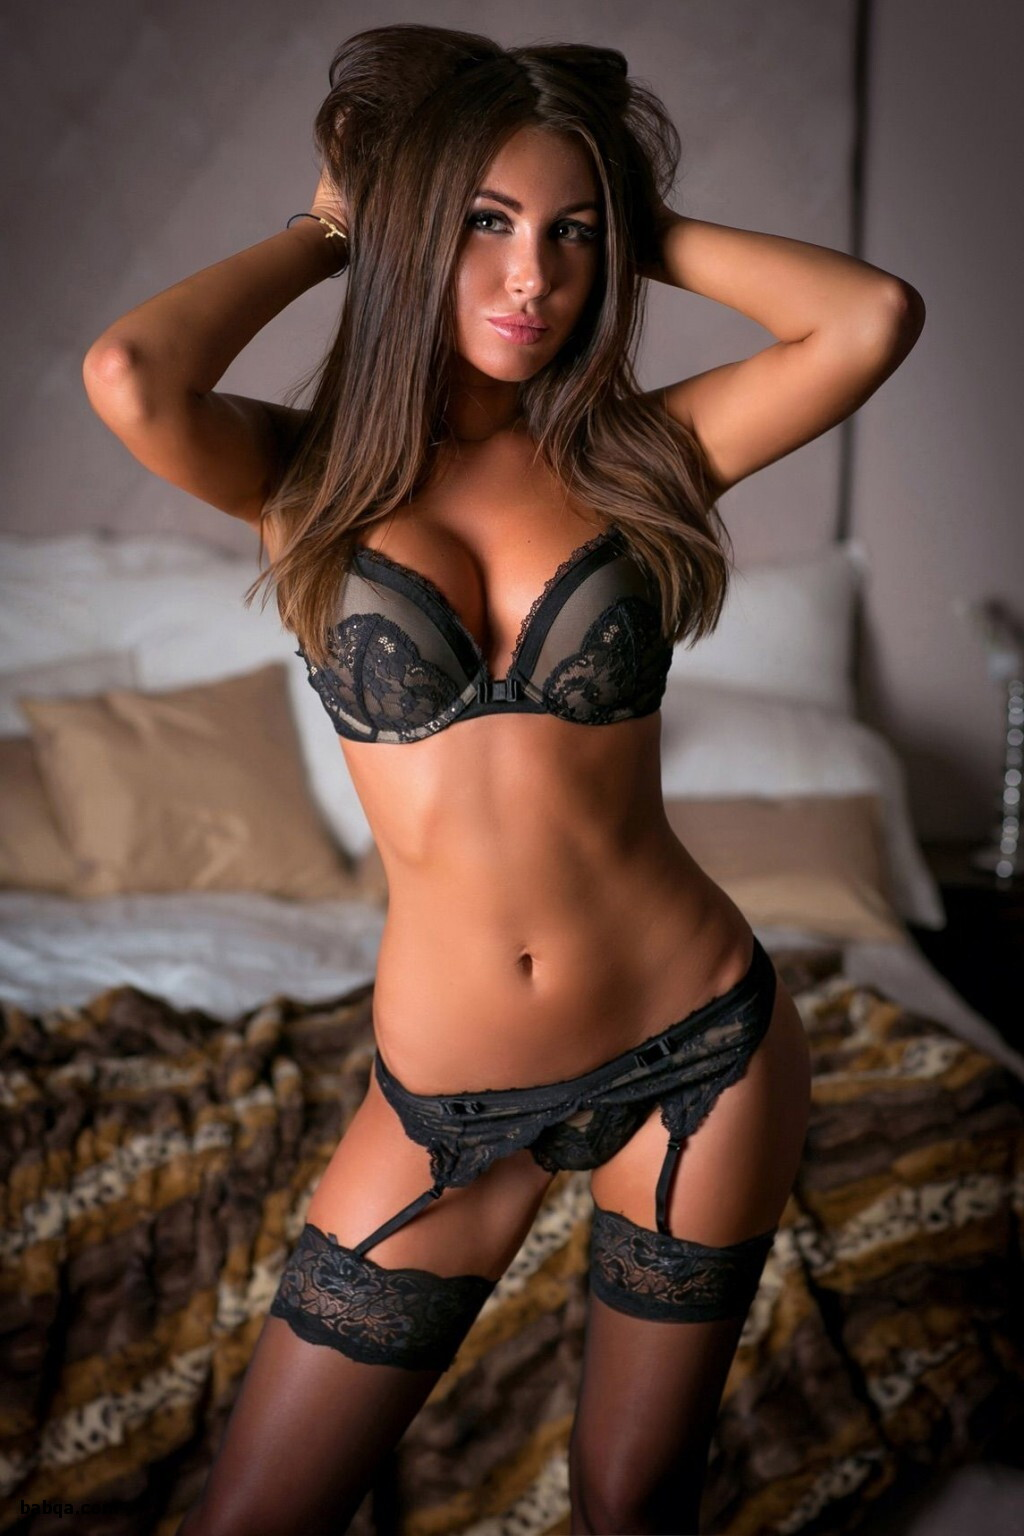 girls with big tits in lingerie and where can i find thigh high stockings